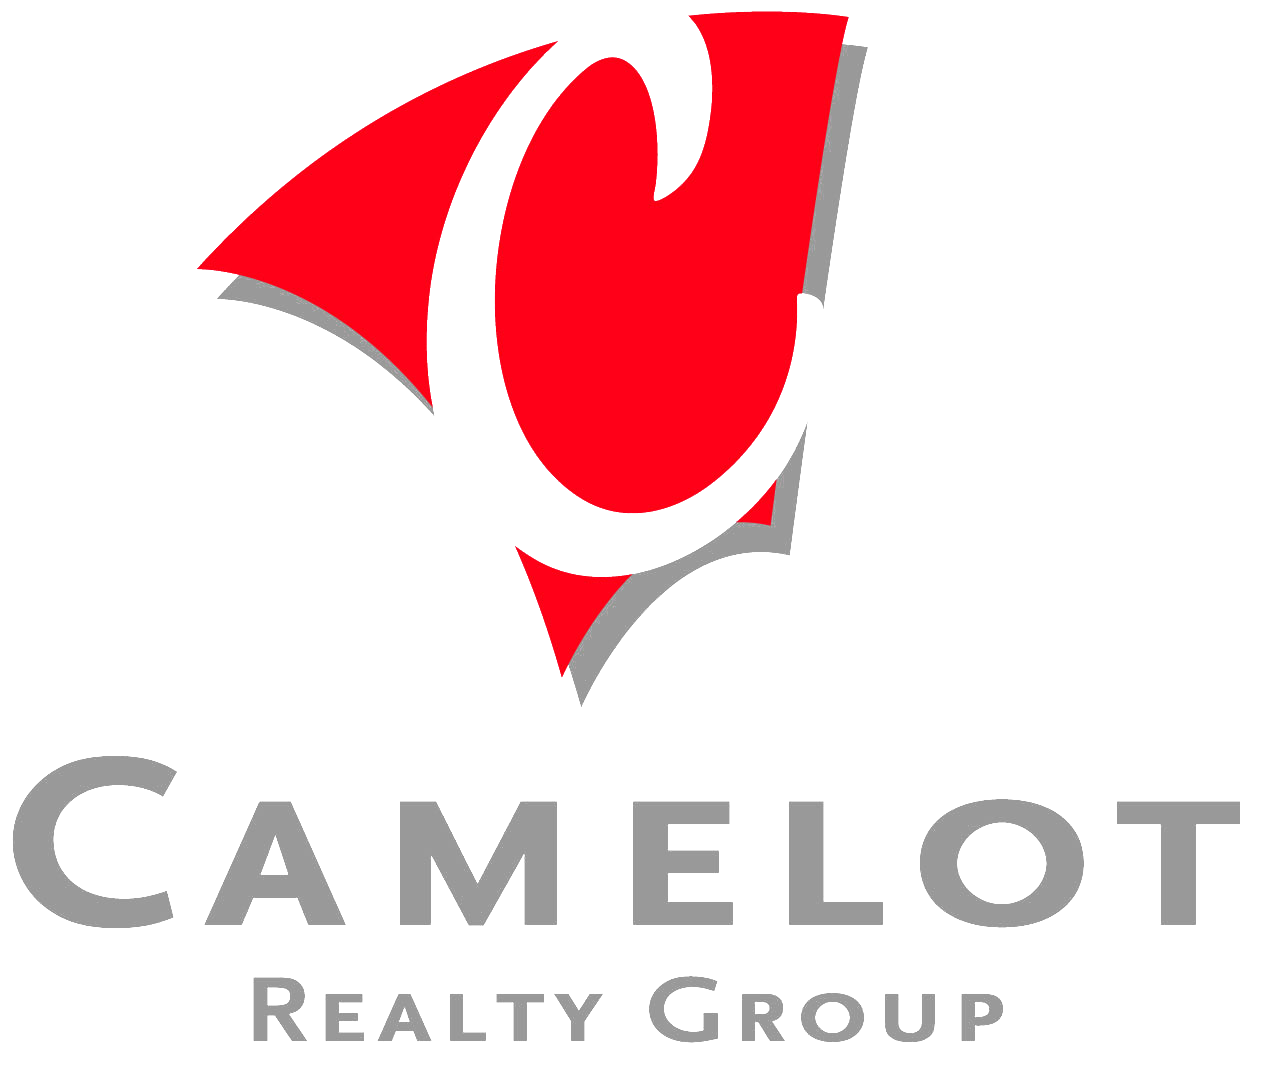 Colin McLelland - Camelot Realty Group Logo